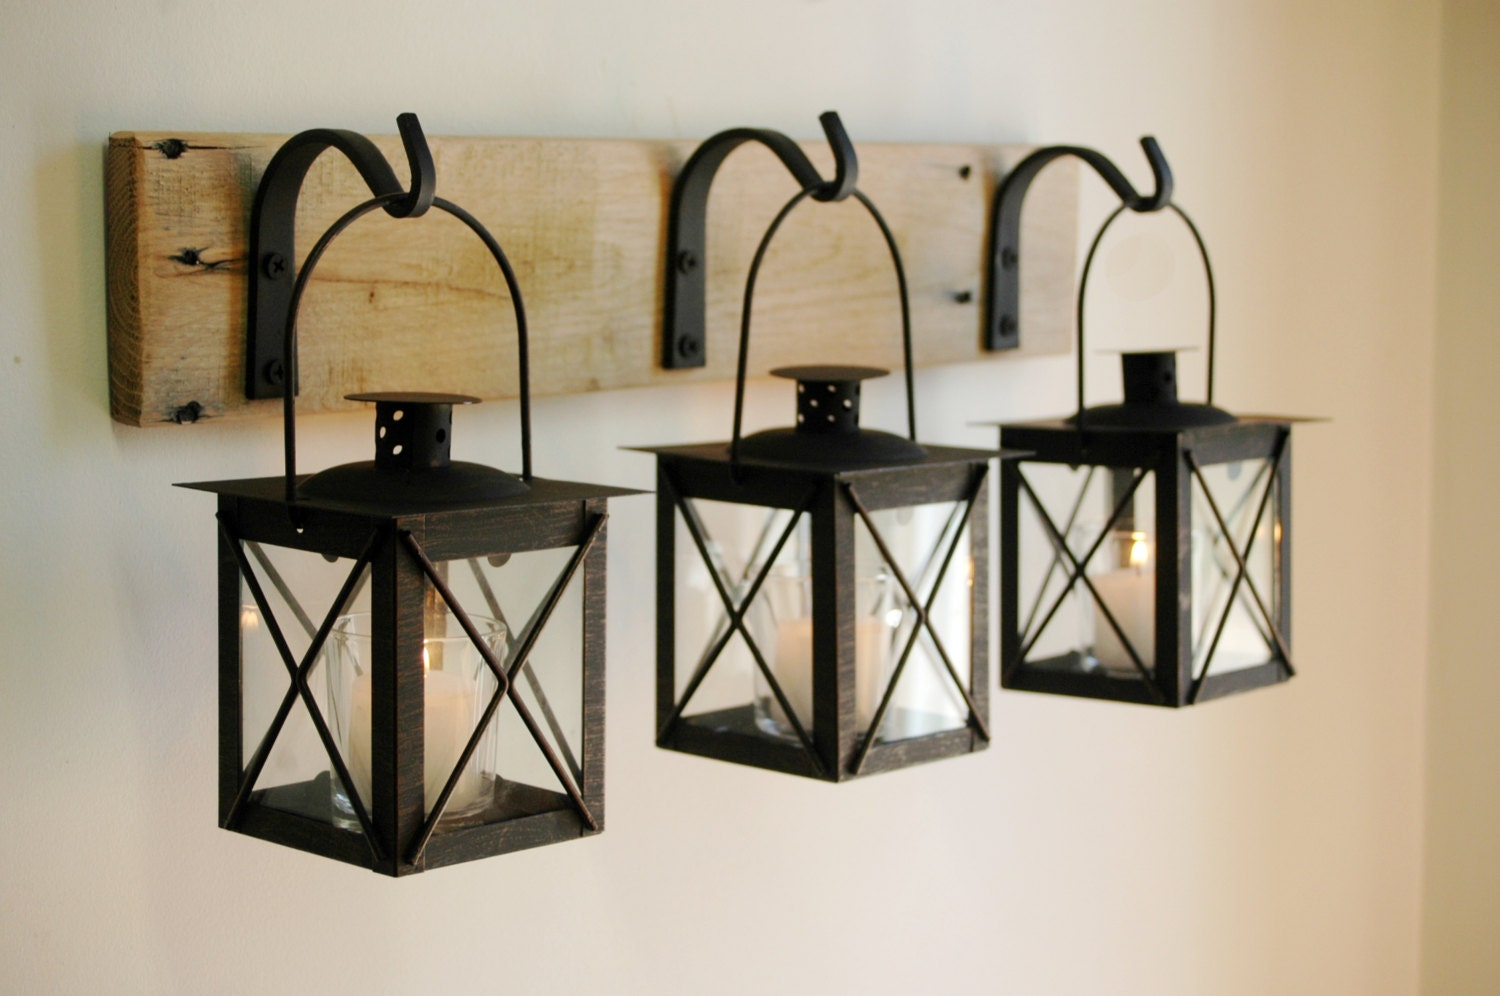 Black Wrought Iron Wall Hangings Fair Black Lantern Trio Wall Decor Home Decor Rustic Decor Decorating Inspiration